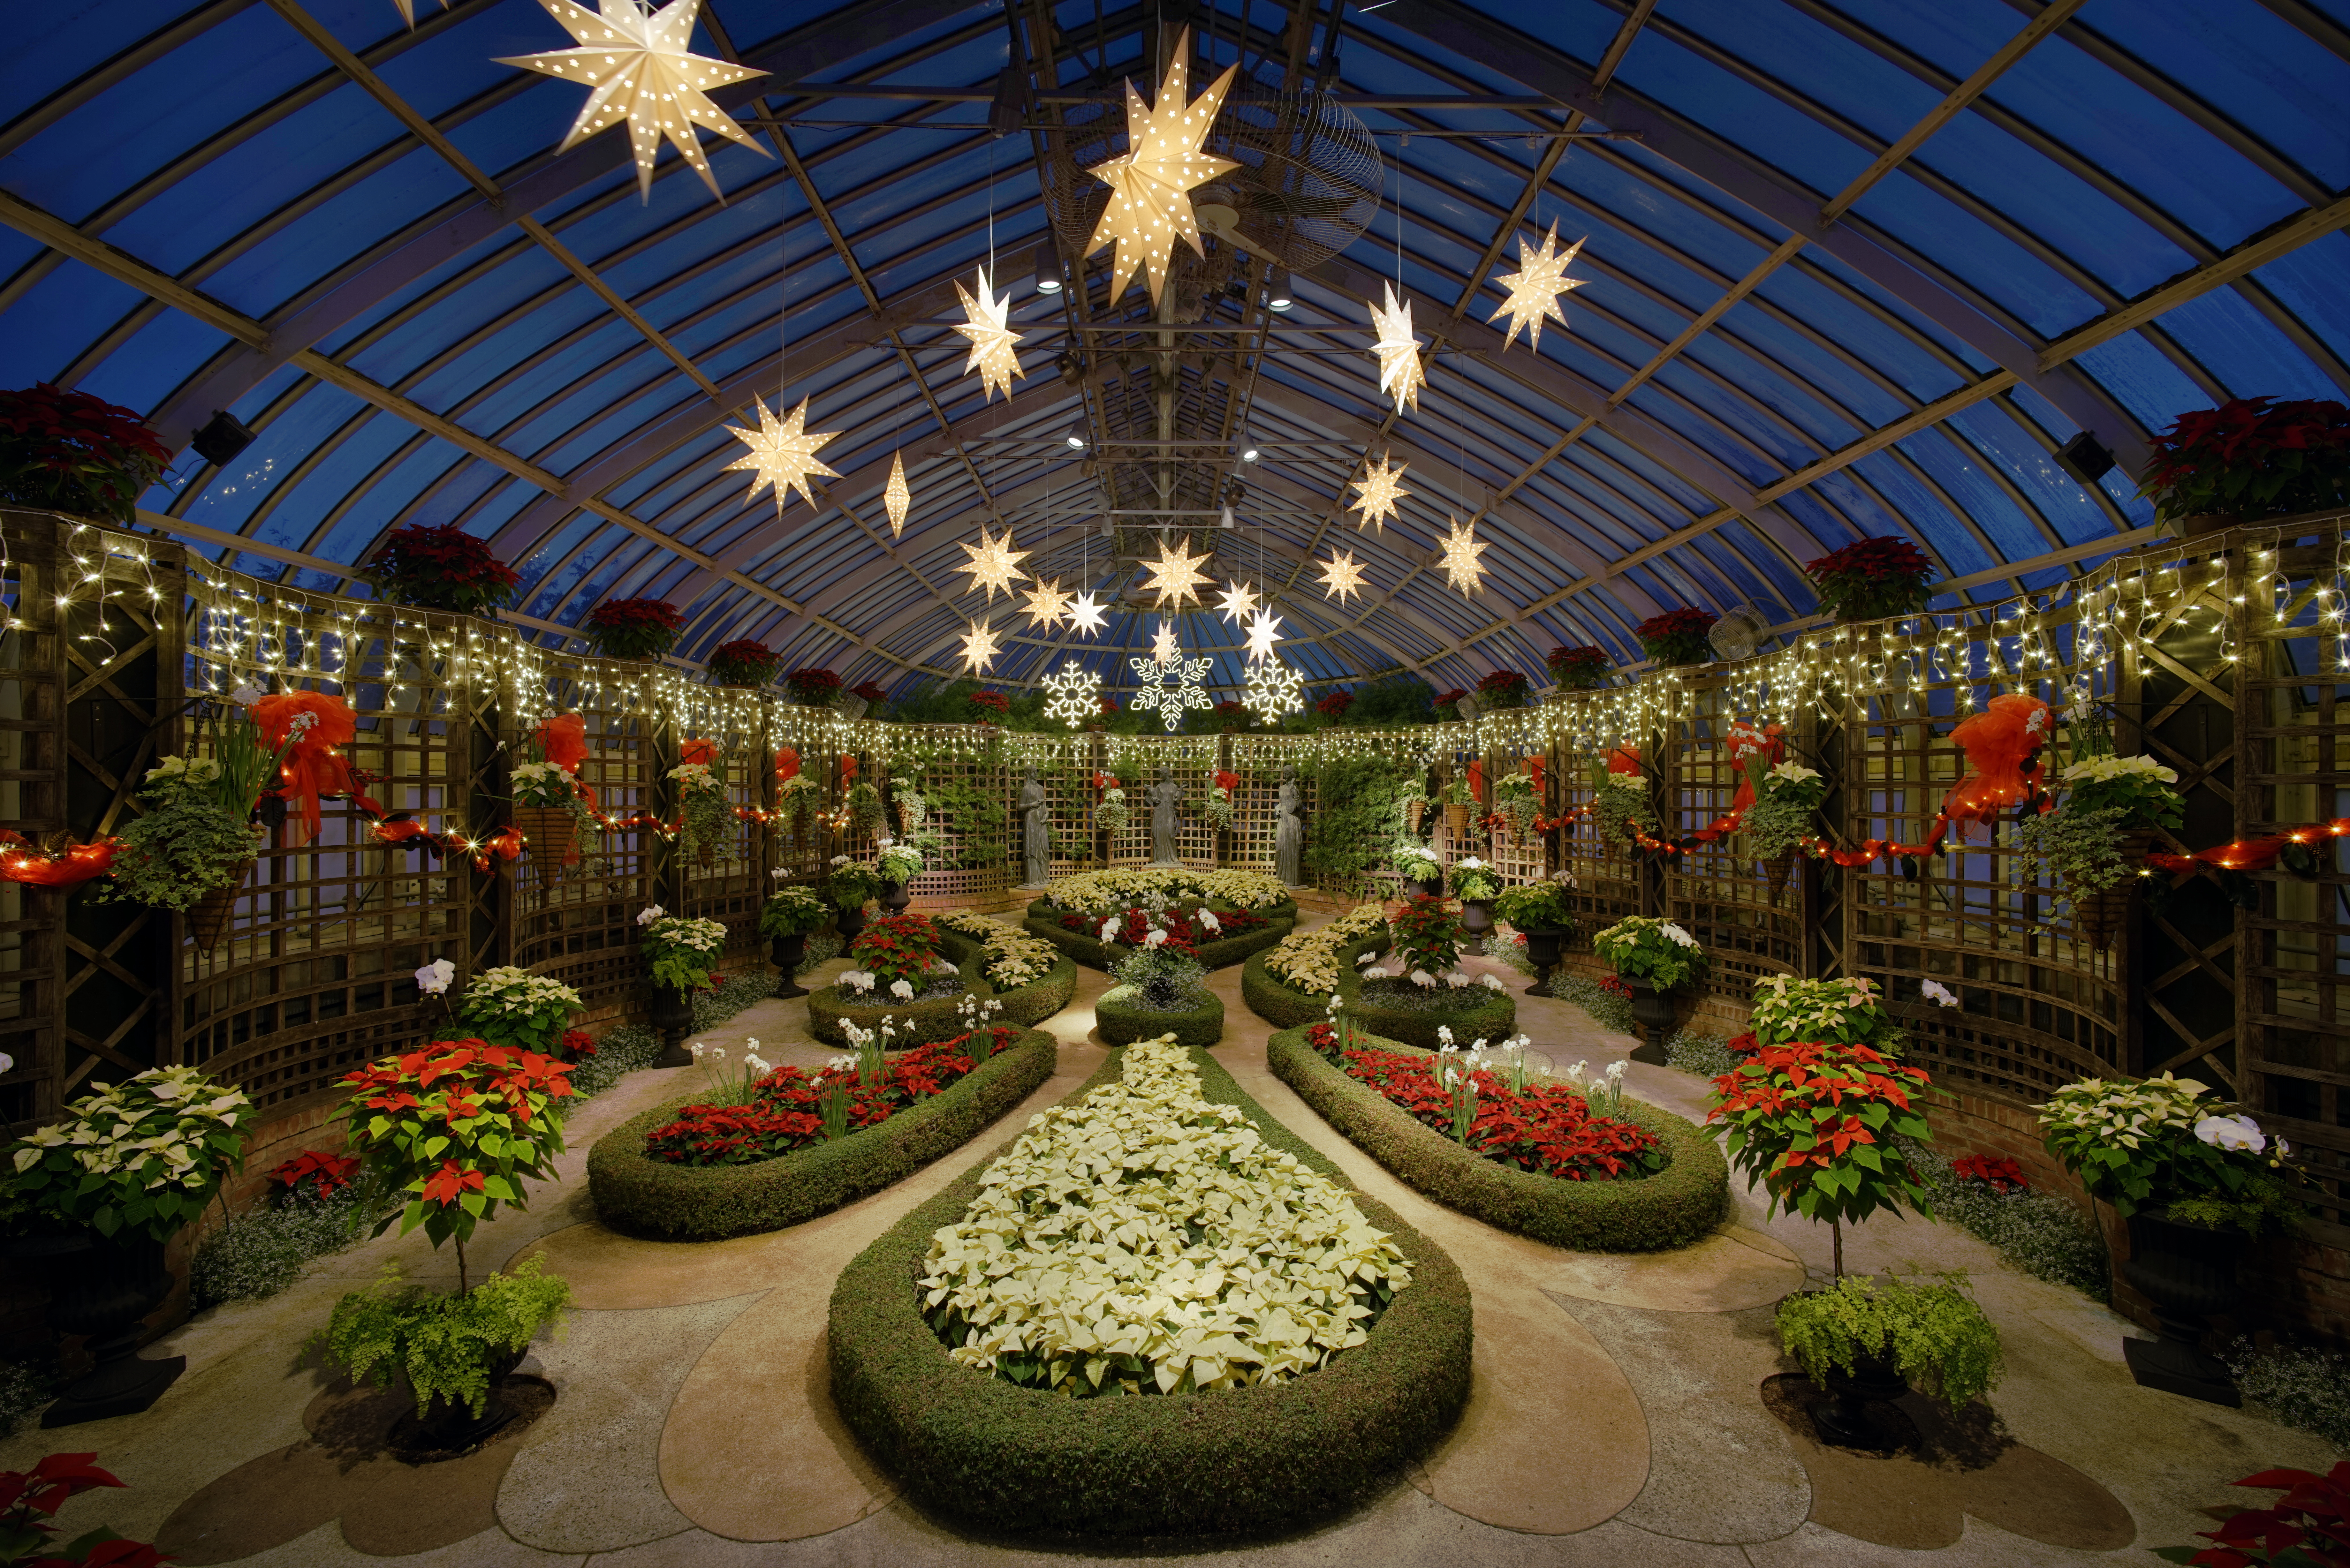 File:Phipps Conservatory winter 2015 Broderie Room.jpg - Wikipedia